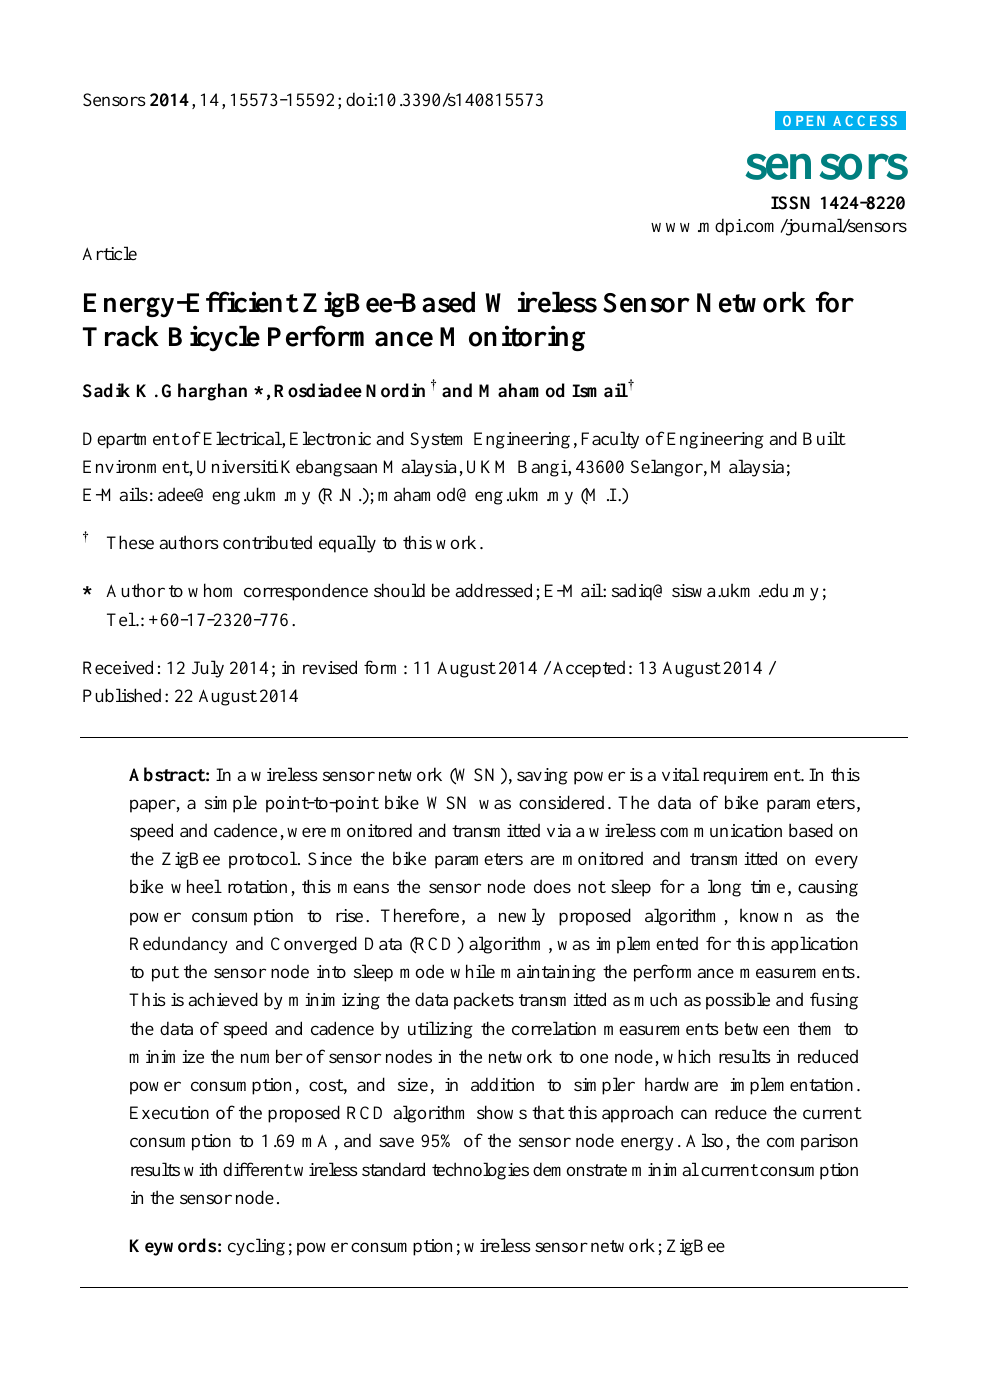 Energy-Efficient ZigBee-Based Wireless Sensor Network for Track